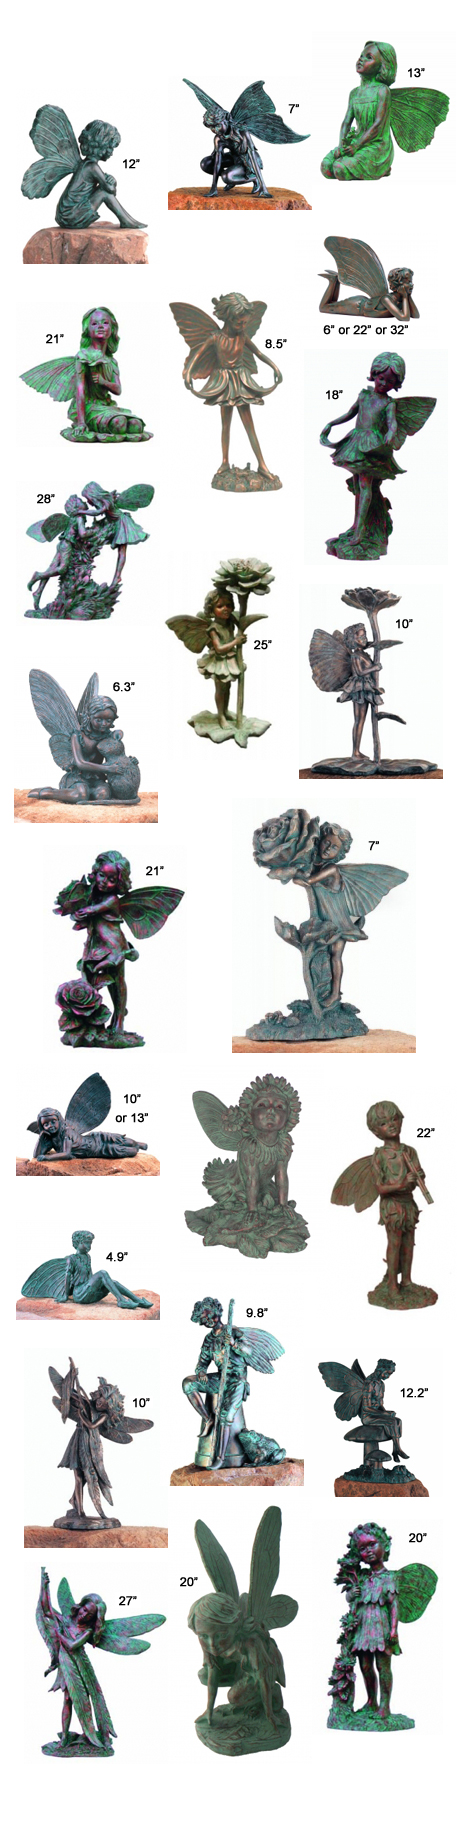 Bronze Patina Fairy Statues